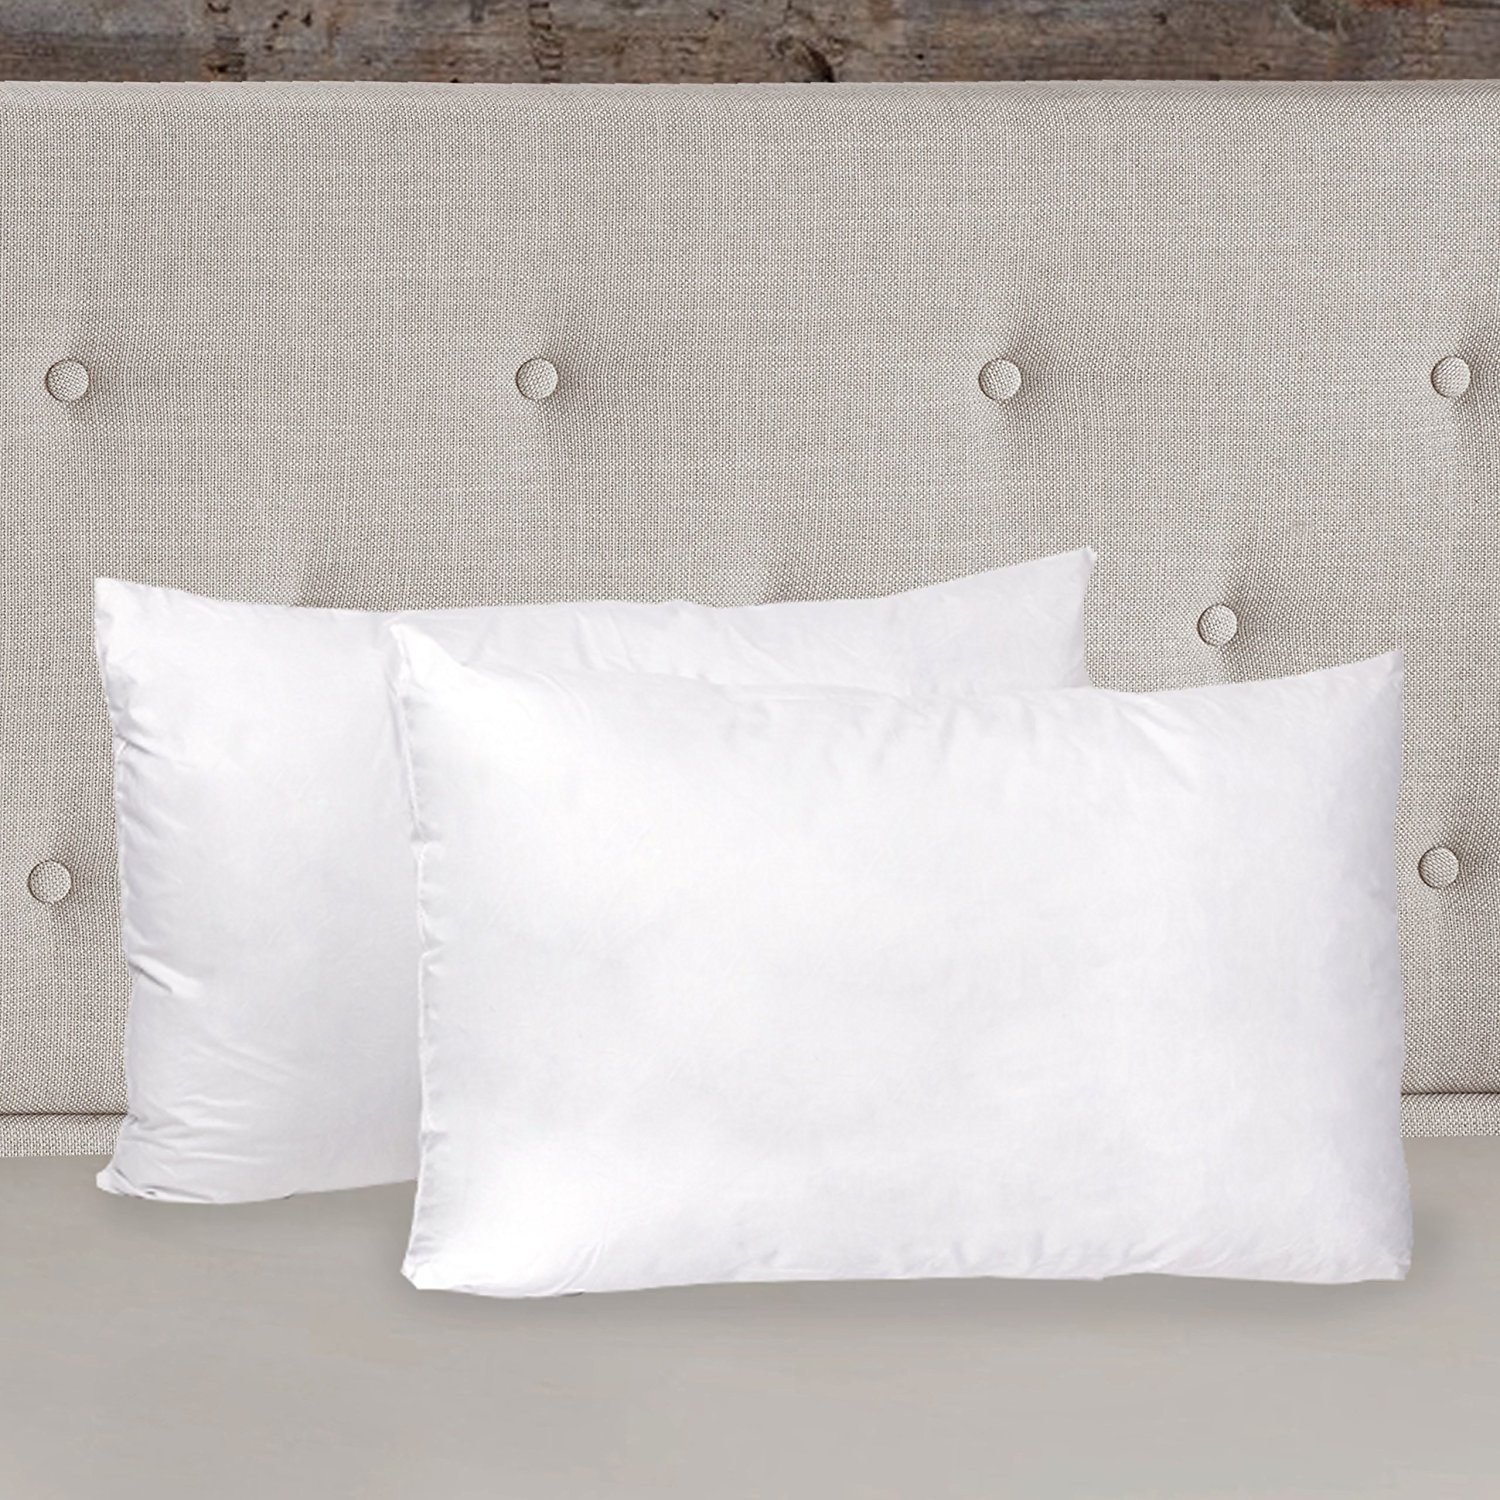 """19 by 26"""" Down Alternative Hypoallergenic Supreme Comfort Fiber Fill Pillow (Pack of 2), Standard, White, All pillows are shipped 2 per package By Sweet Home Collection,USA"""